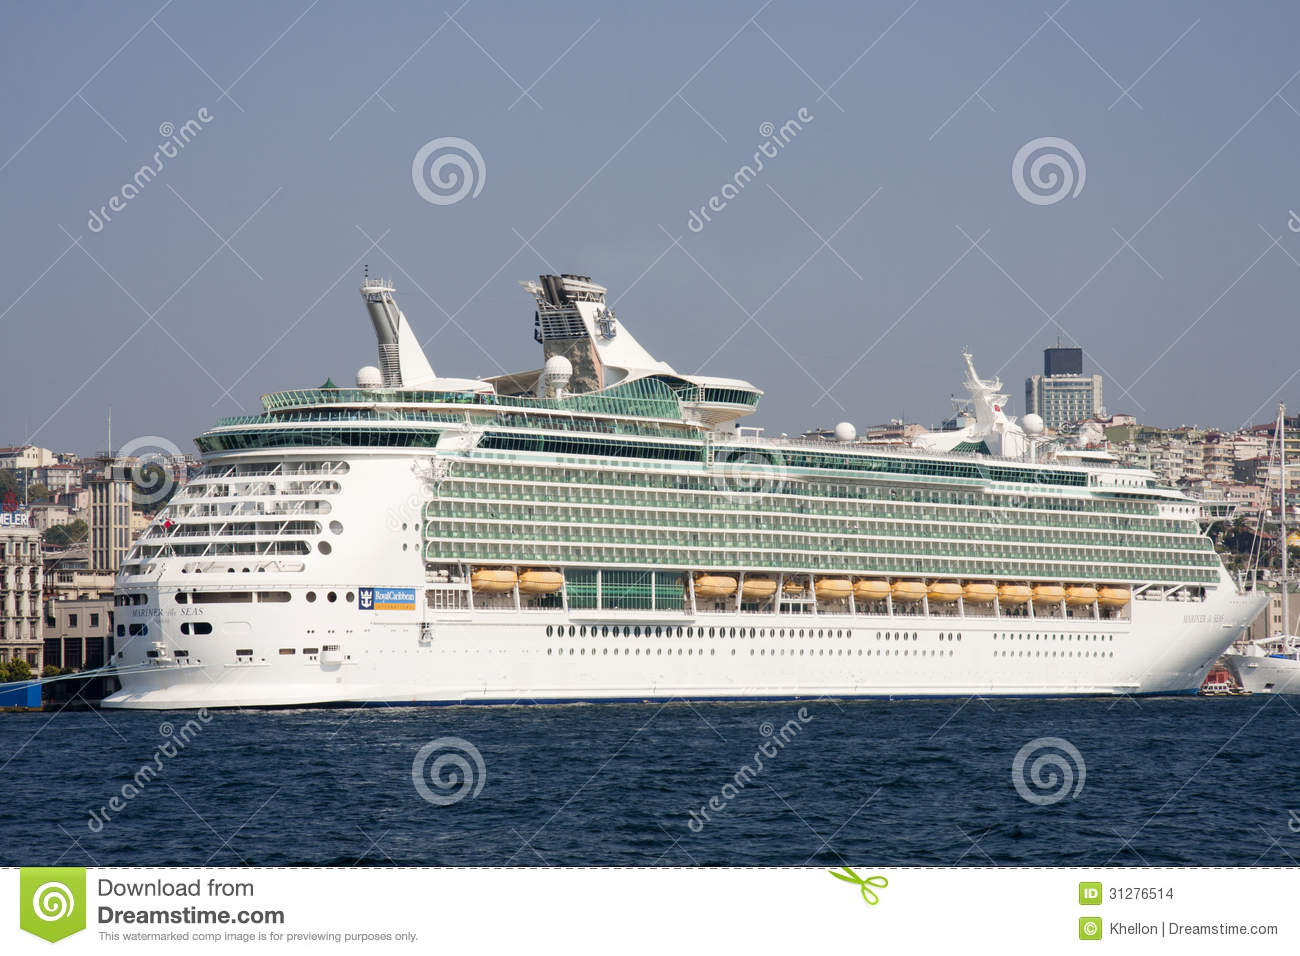 ISTANBUL, TURKEY - OCT 8TH: The cruise ship Mariner of the Seas